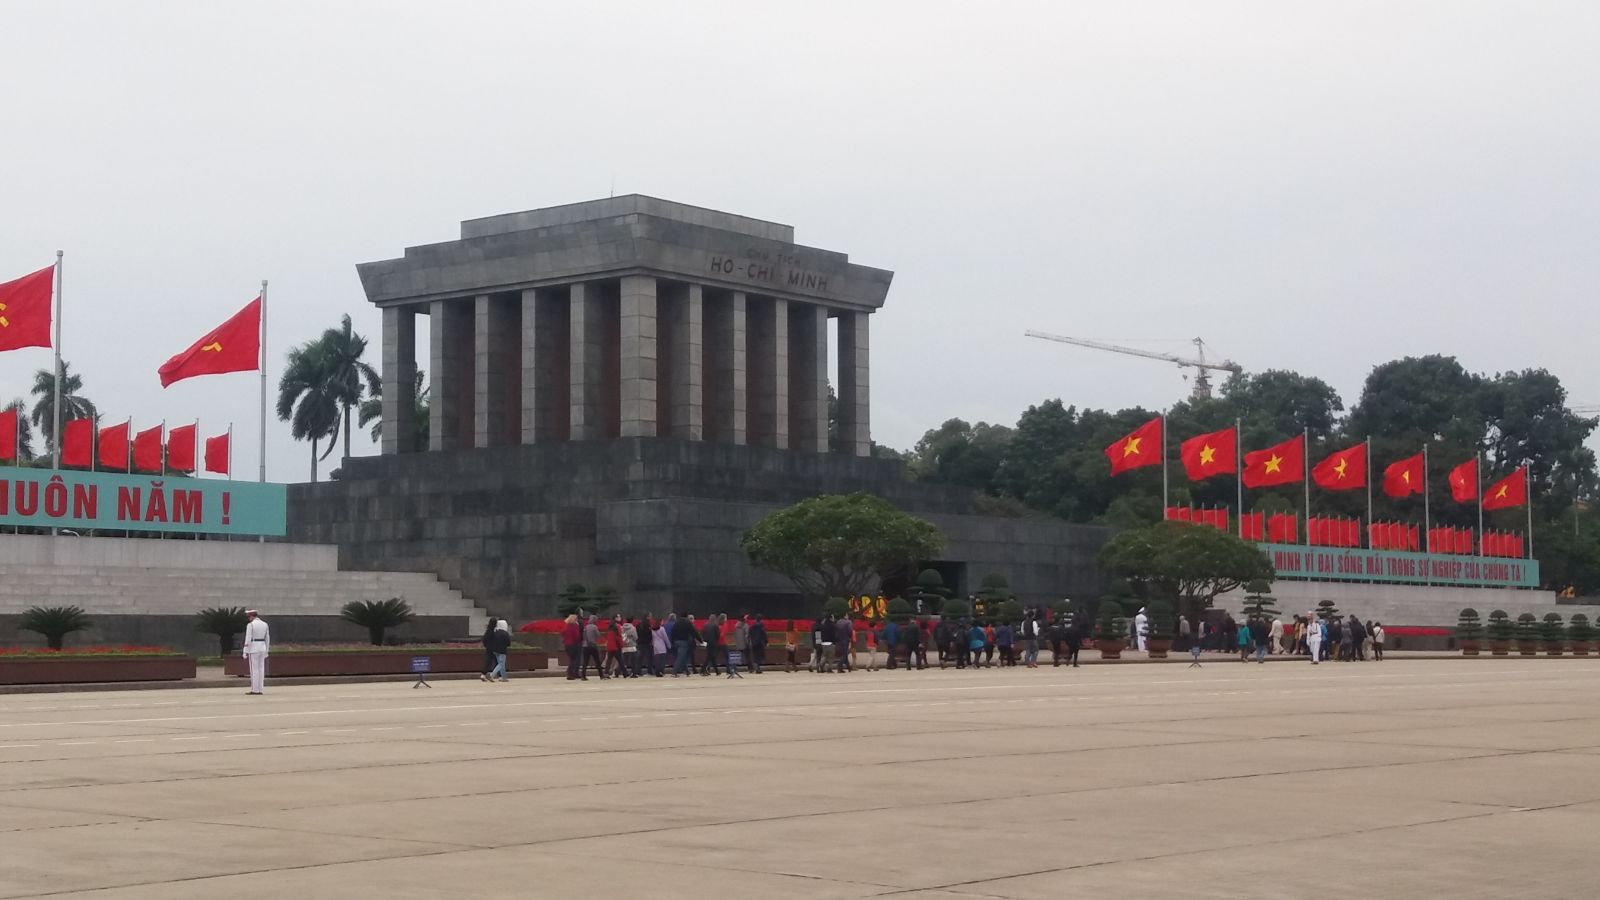 Top attractions & things to do in Hanoi1